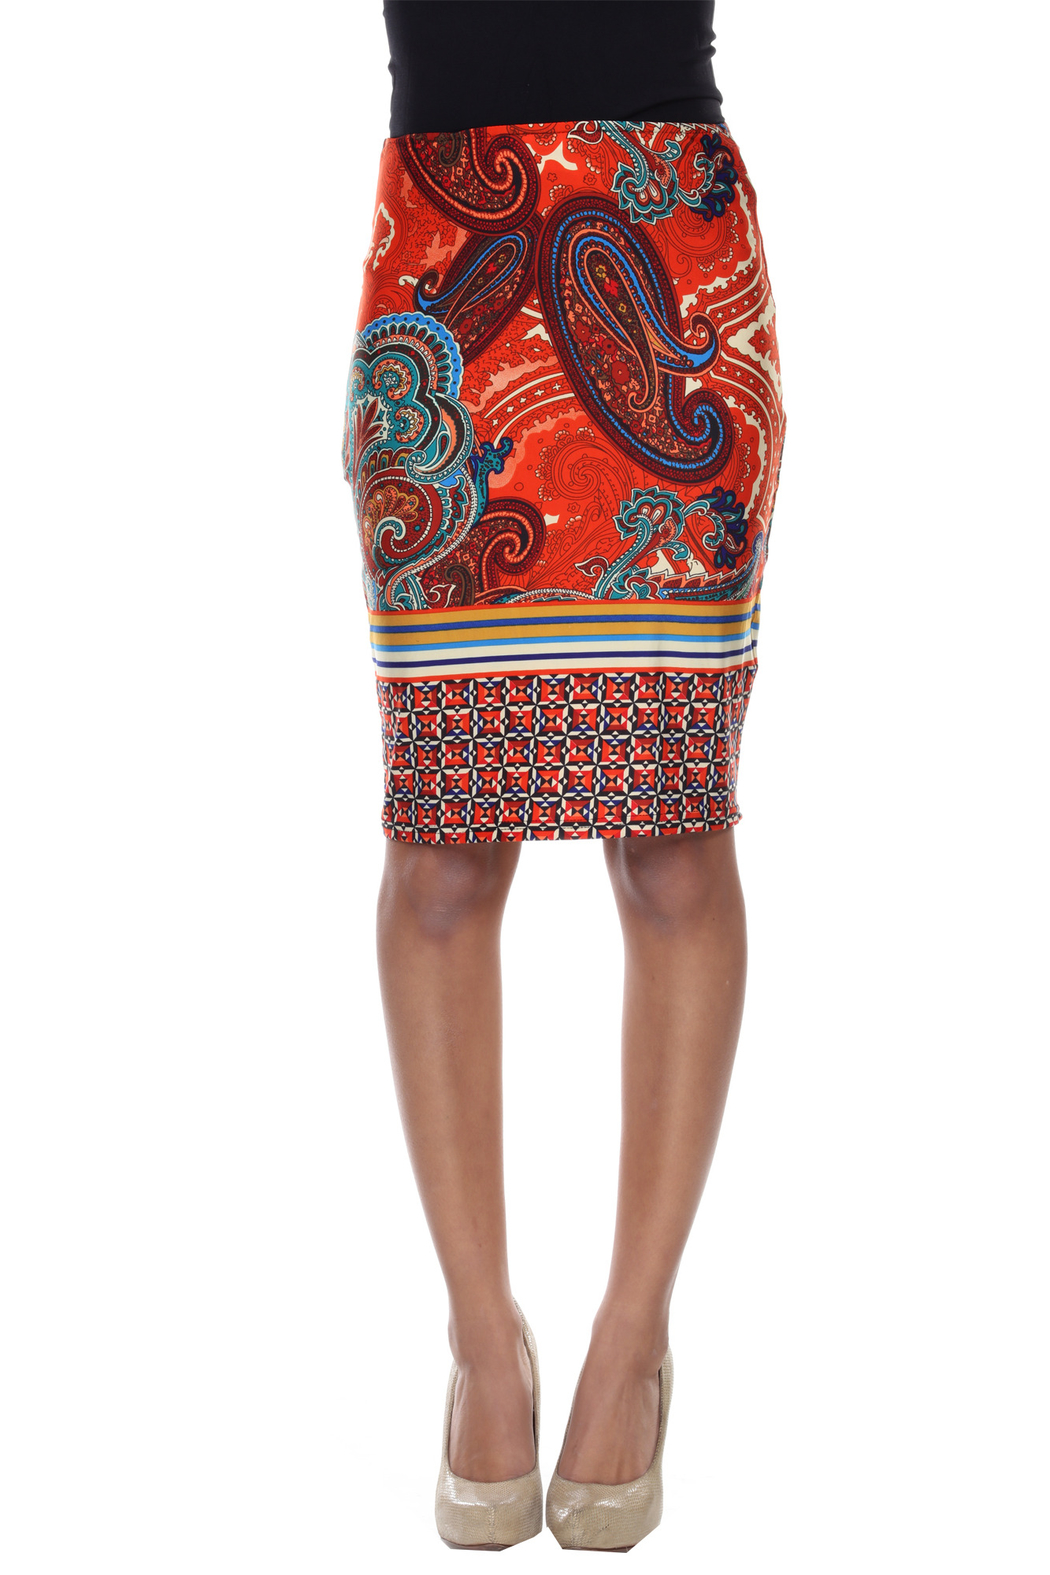 WhiteMark White Mark's Vintage Paisley Printed Pencil Skirt - Front Cropped Image